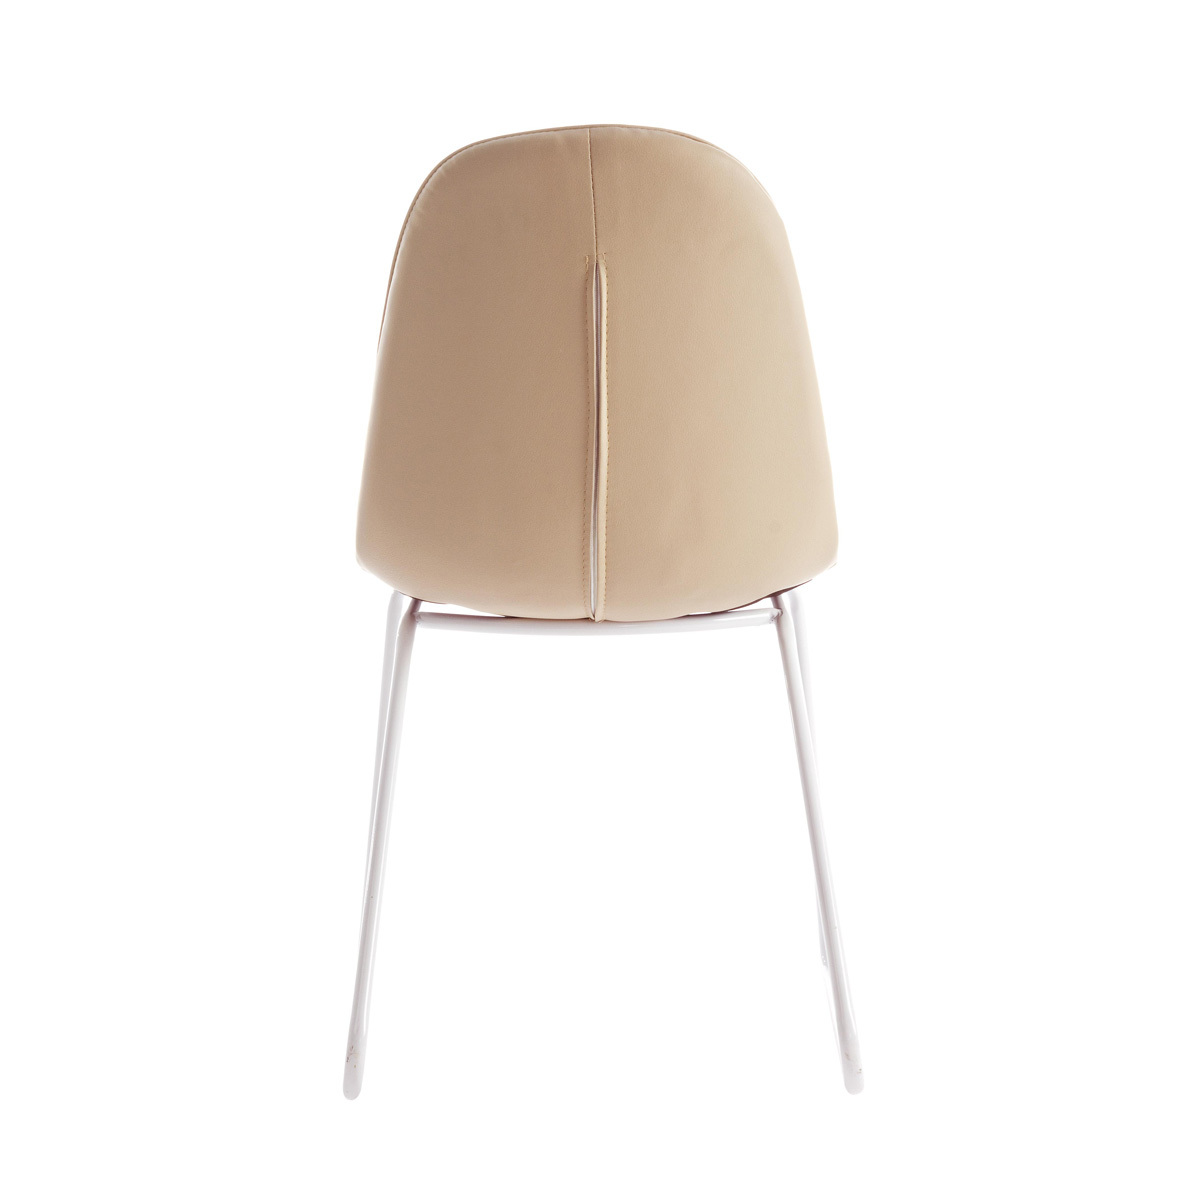 Photos 3: Bizzotto Chair in metal and eco-leather - tortora 0731656